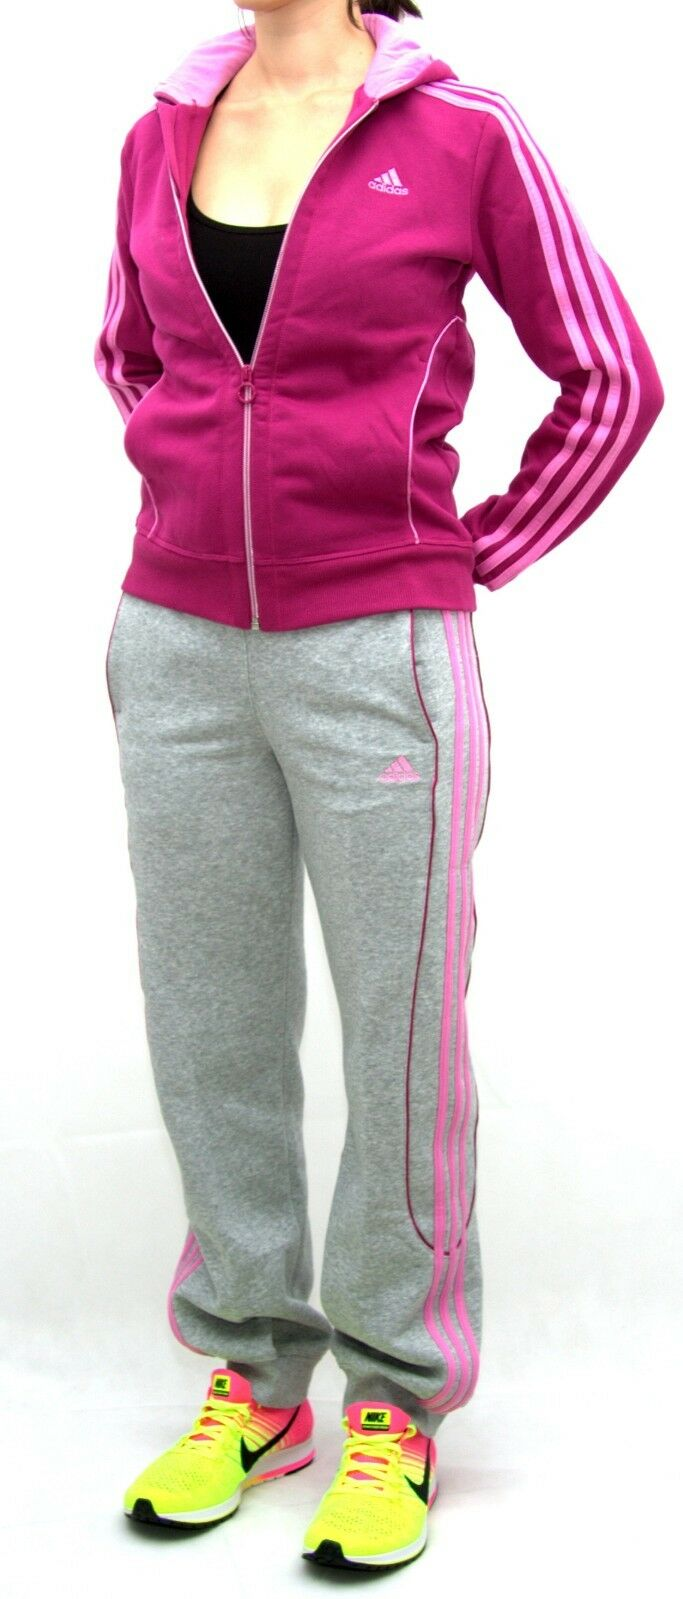 Adidas Damen CO Trainingsanzug YG S HD CO Damen TS  Sportanzug Gr. 152   L 472be0